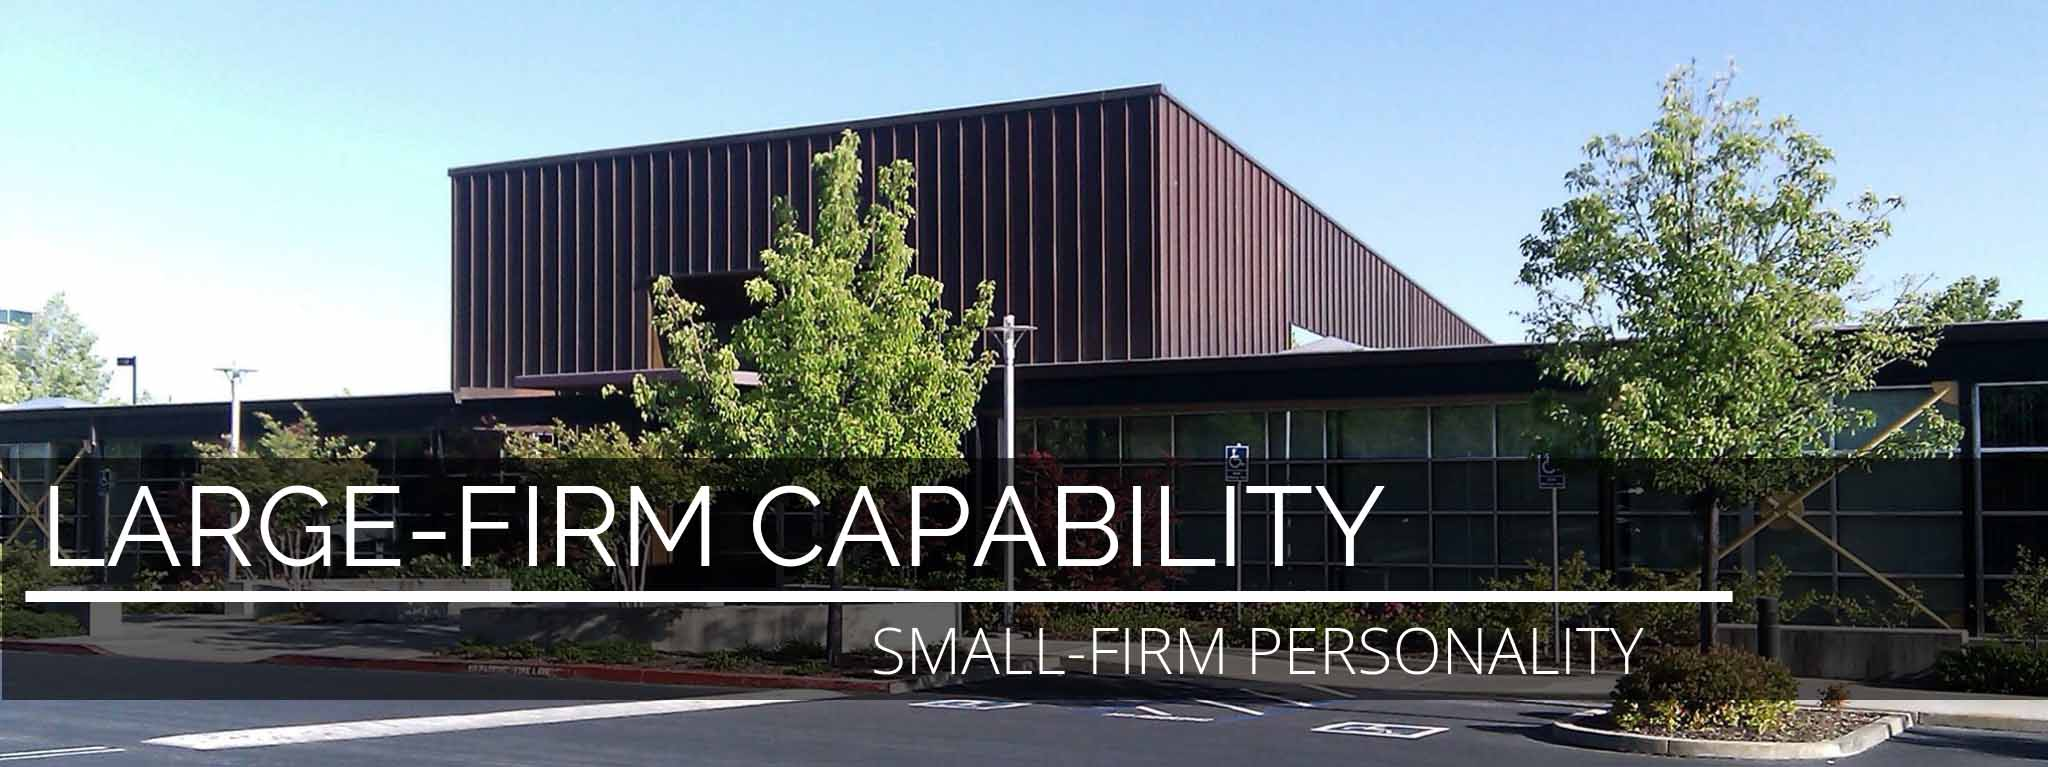 a large CPA firm capability, but a small firm personality